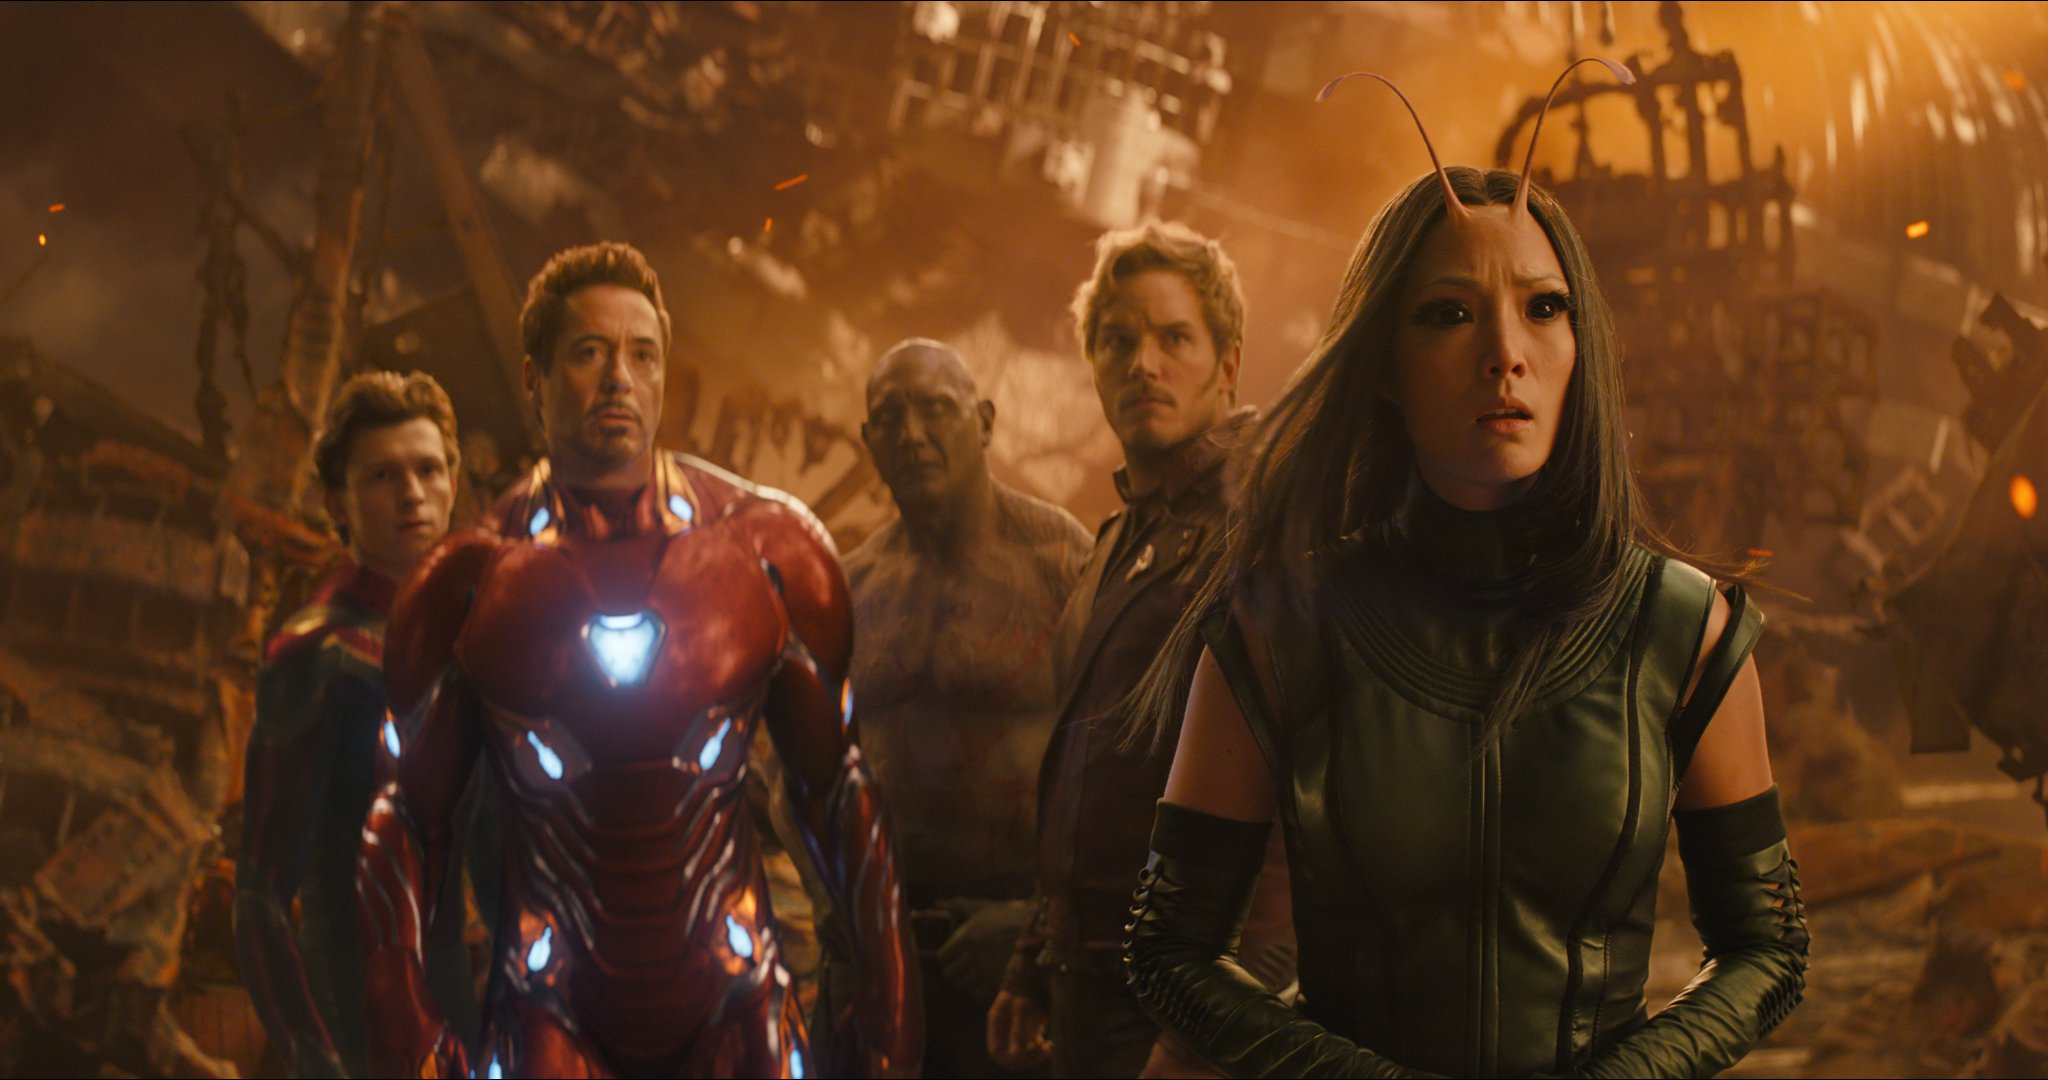 L to R: Spider-Man/Peter Parker (Tom Holland), Iron Man/Tony Stark (Robert Downey Jr.), Drax (Dave Bautista), Star-Lord/Peter Quill (Chris Pratt) and Mantis (Pom Klementieff)